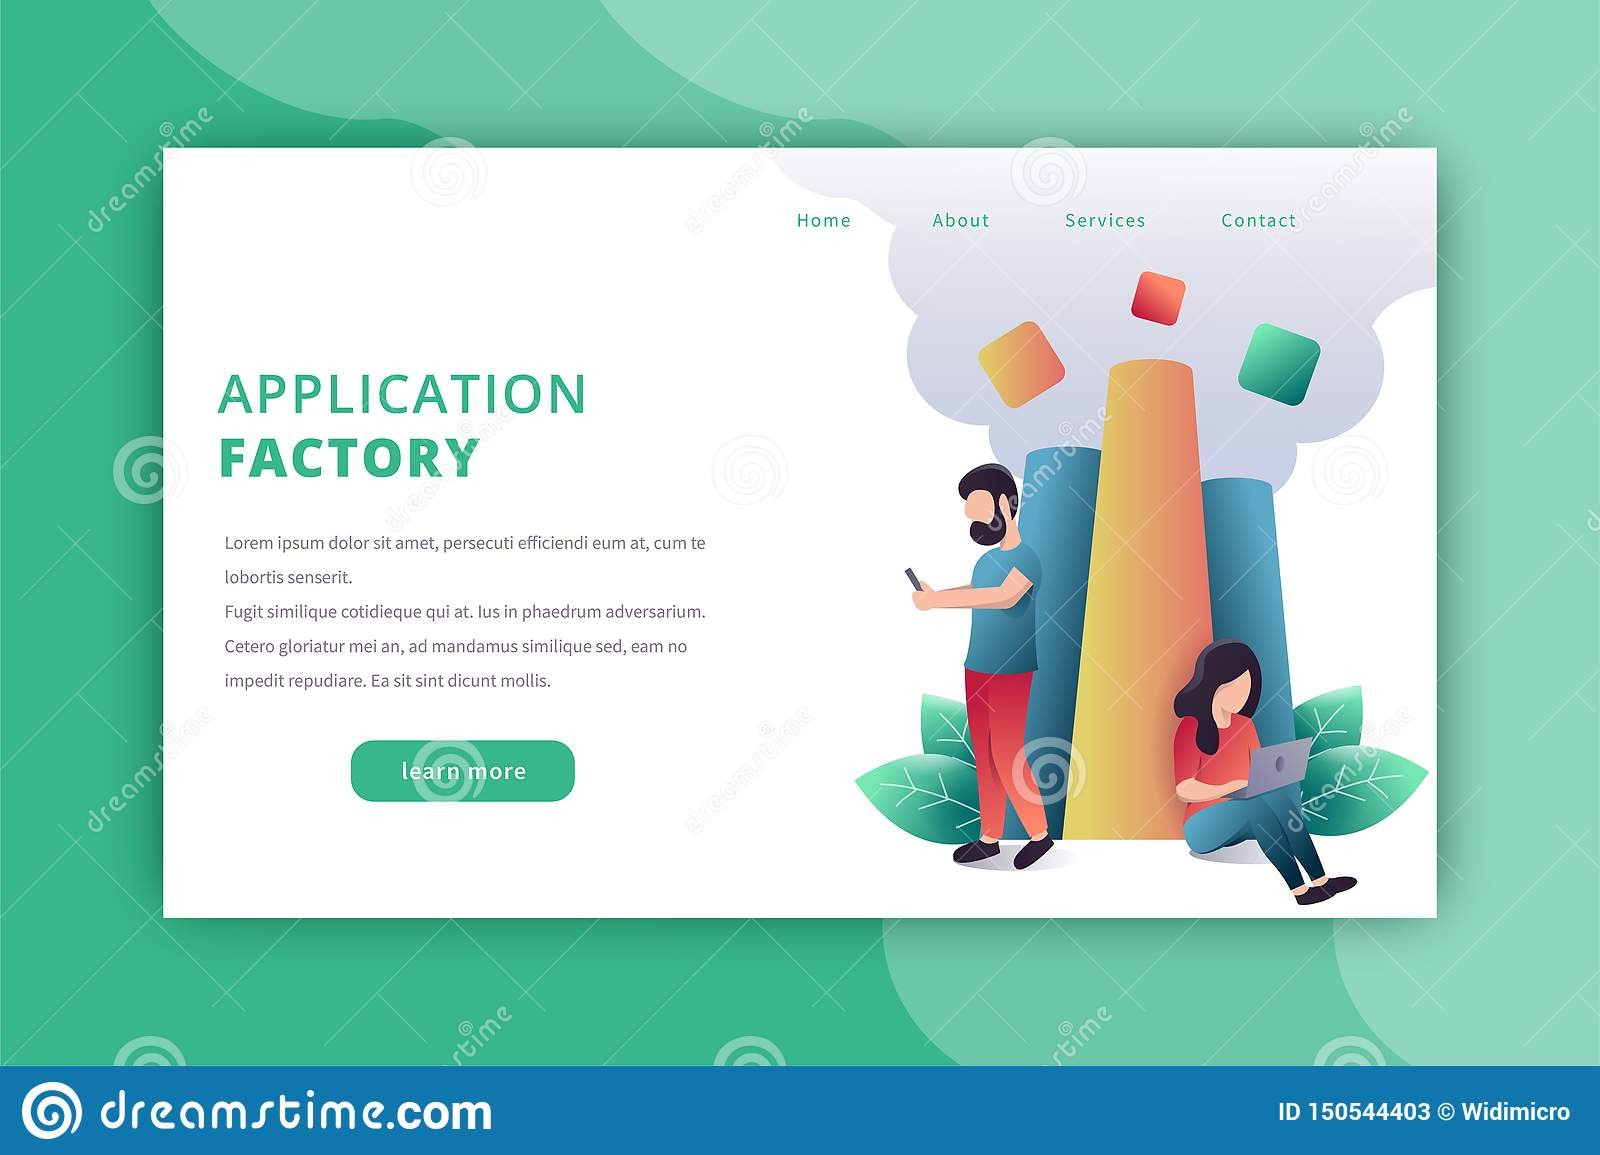 Application factory landing page